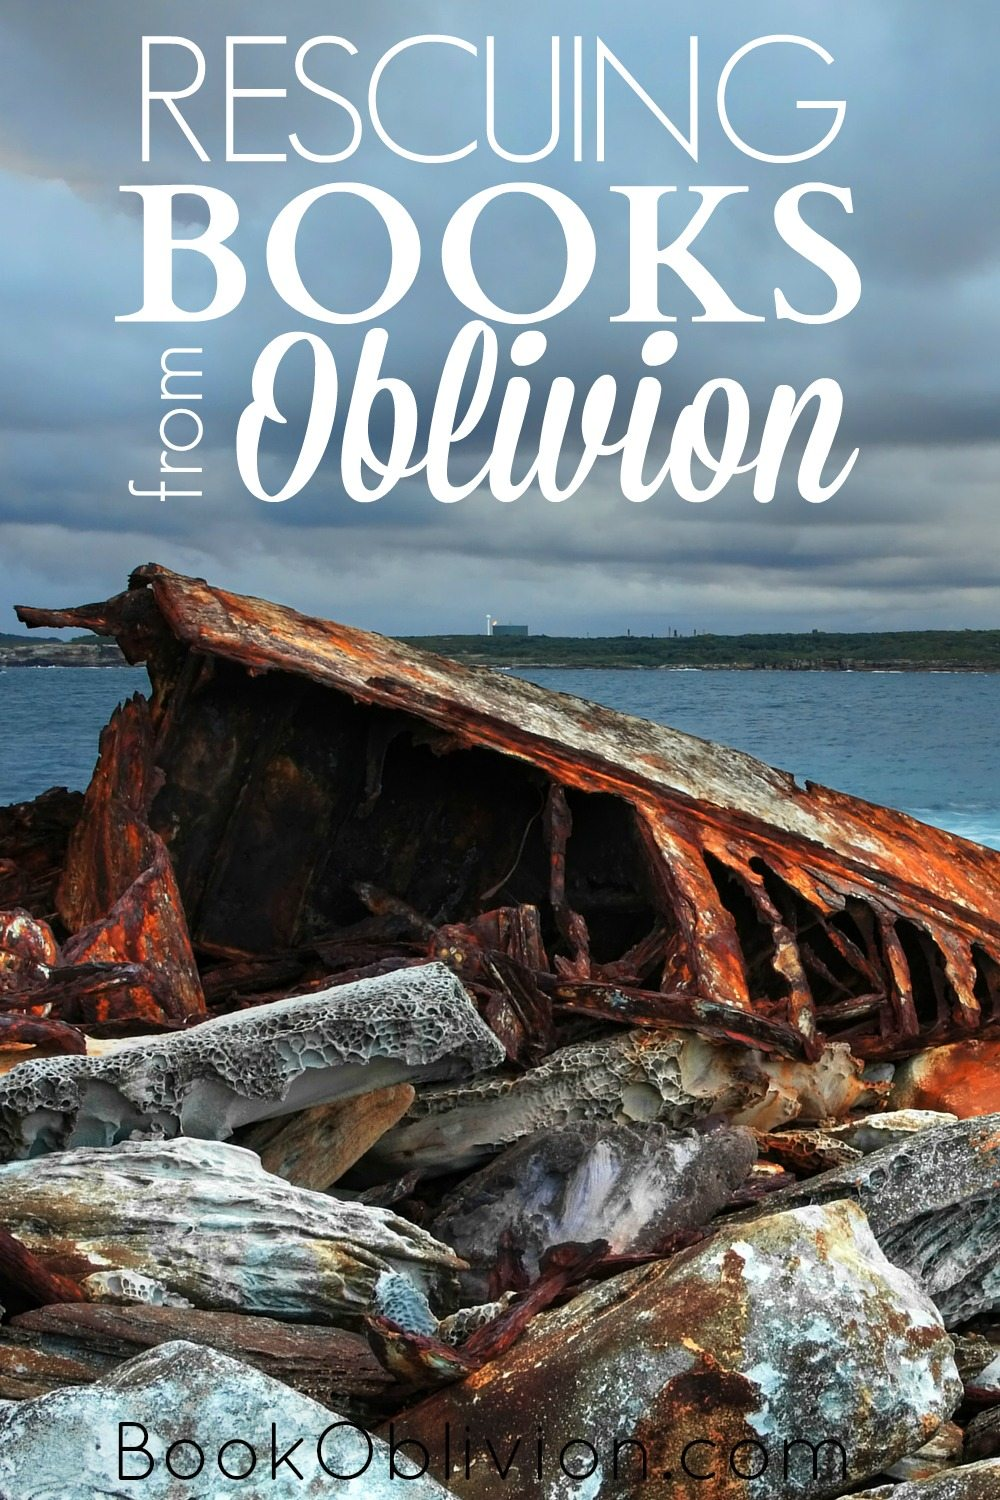 Rescuing Books From Oblivion